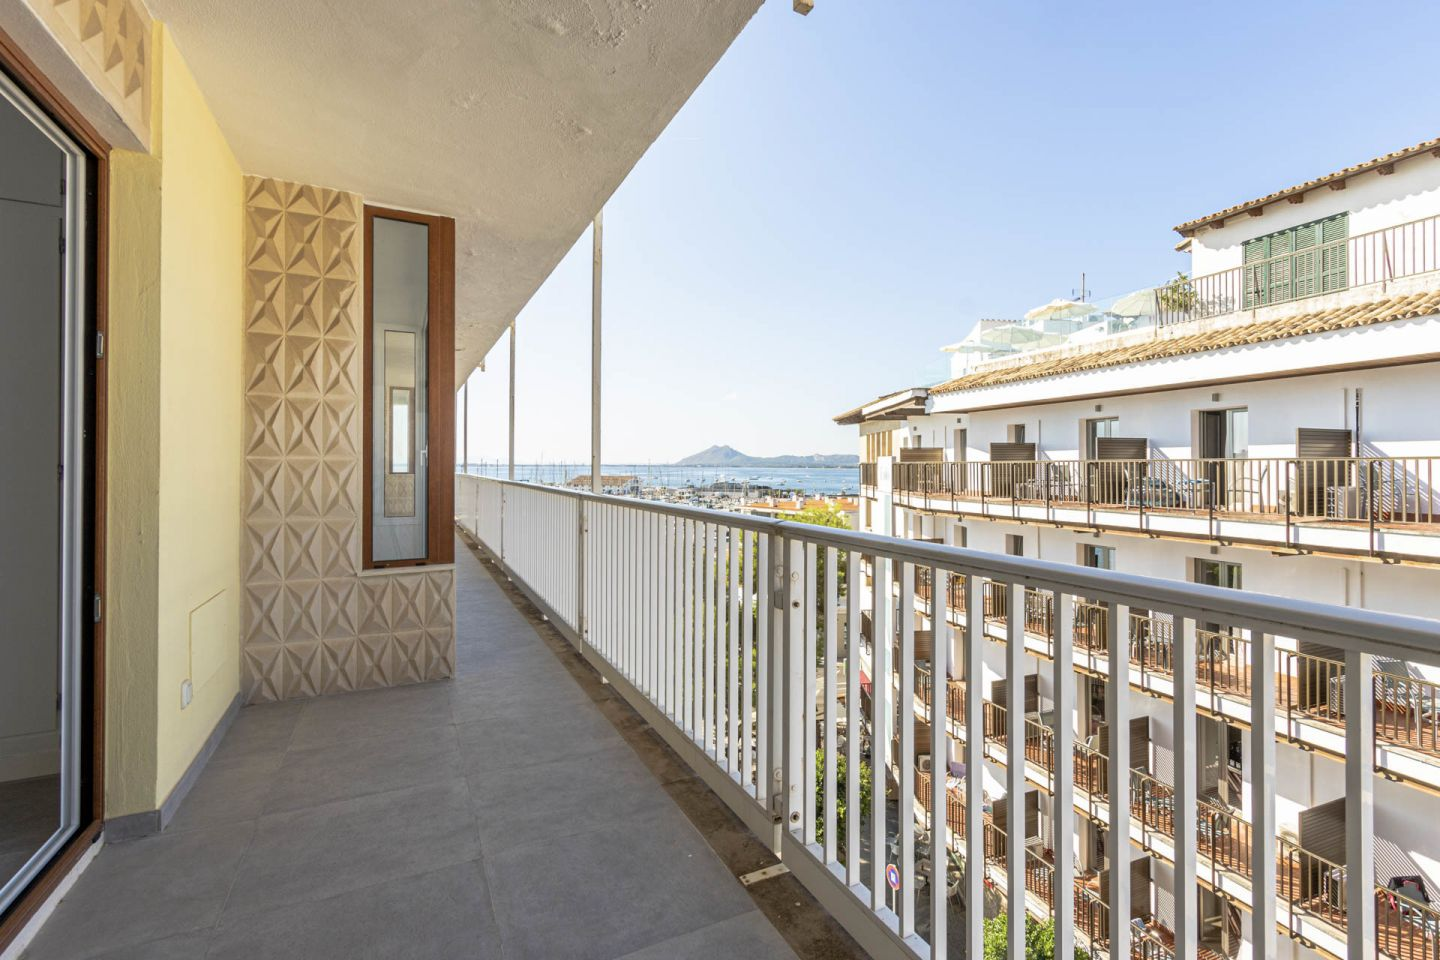 4 Bed Apartment for sale in PUERTO POLLENSA 18